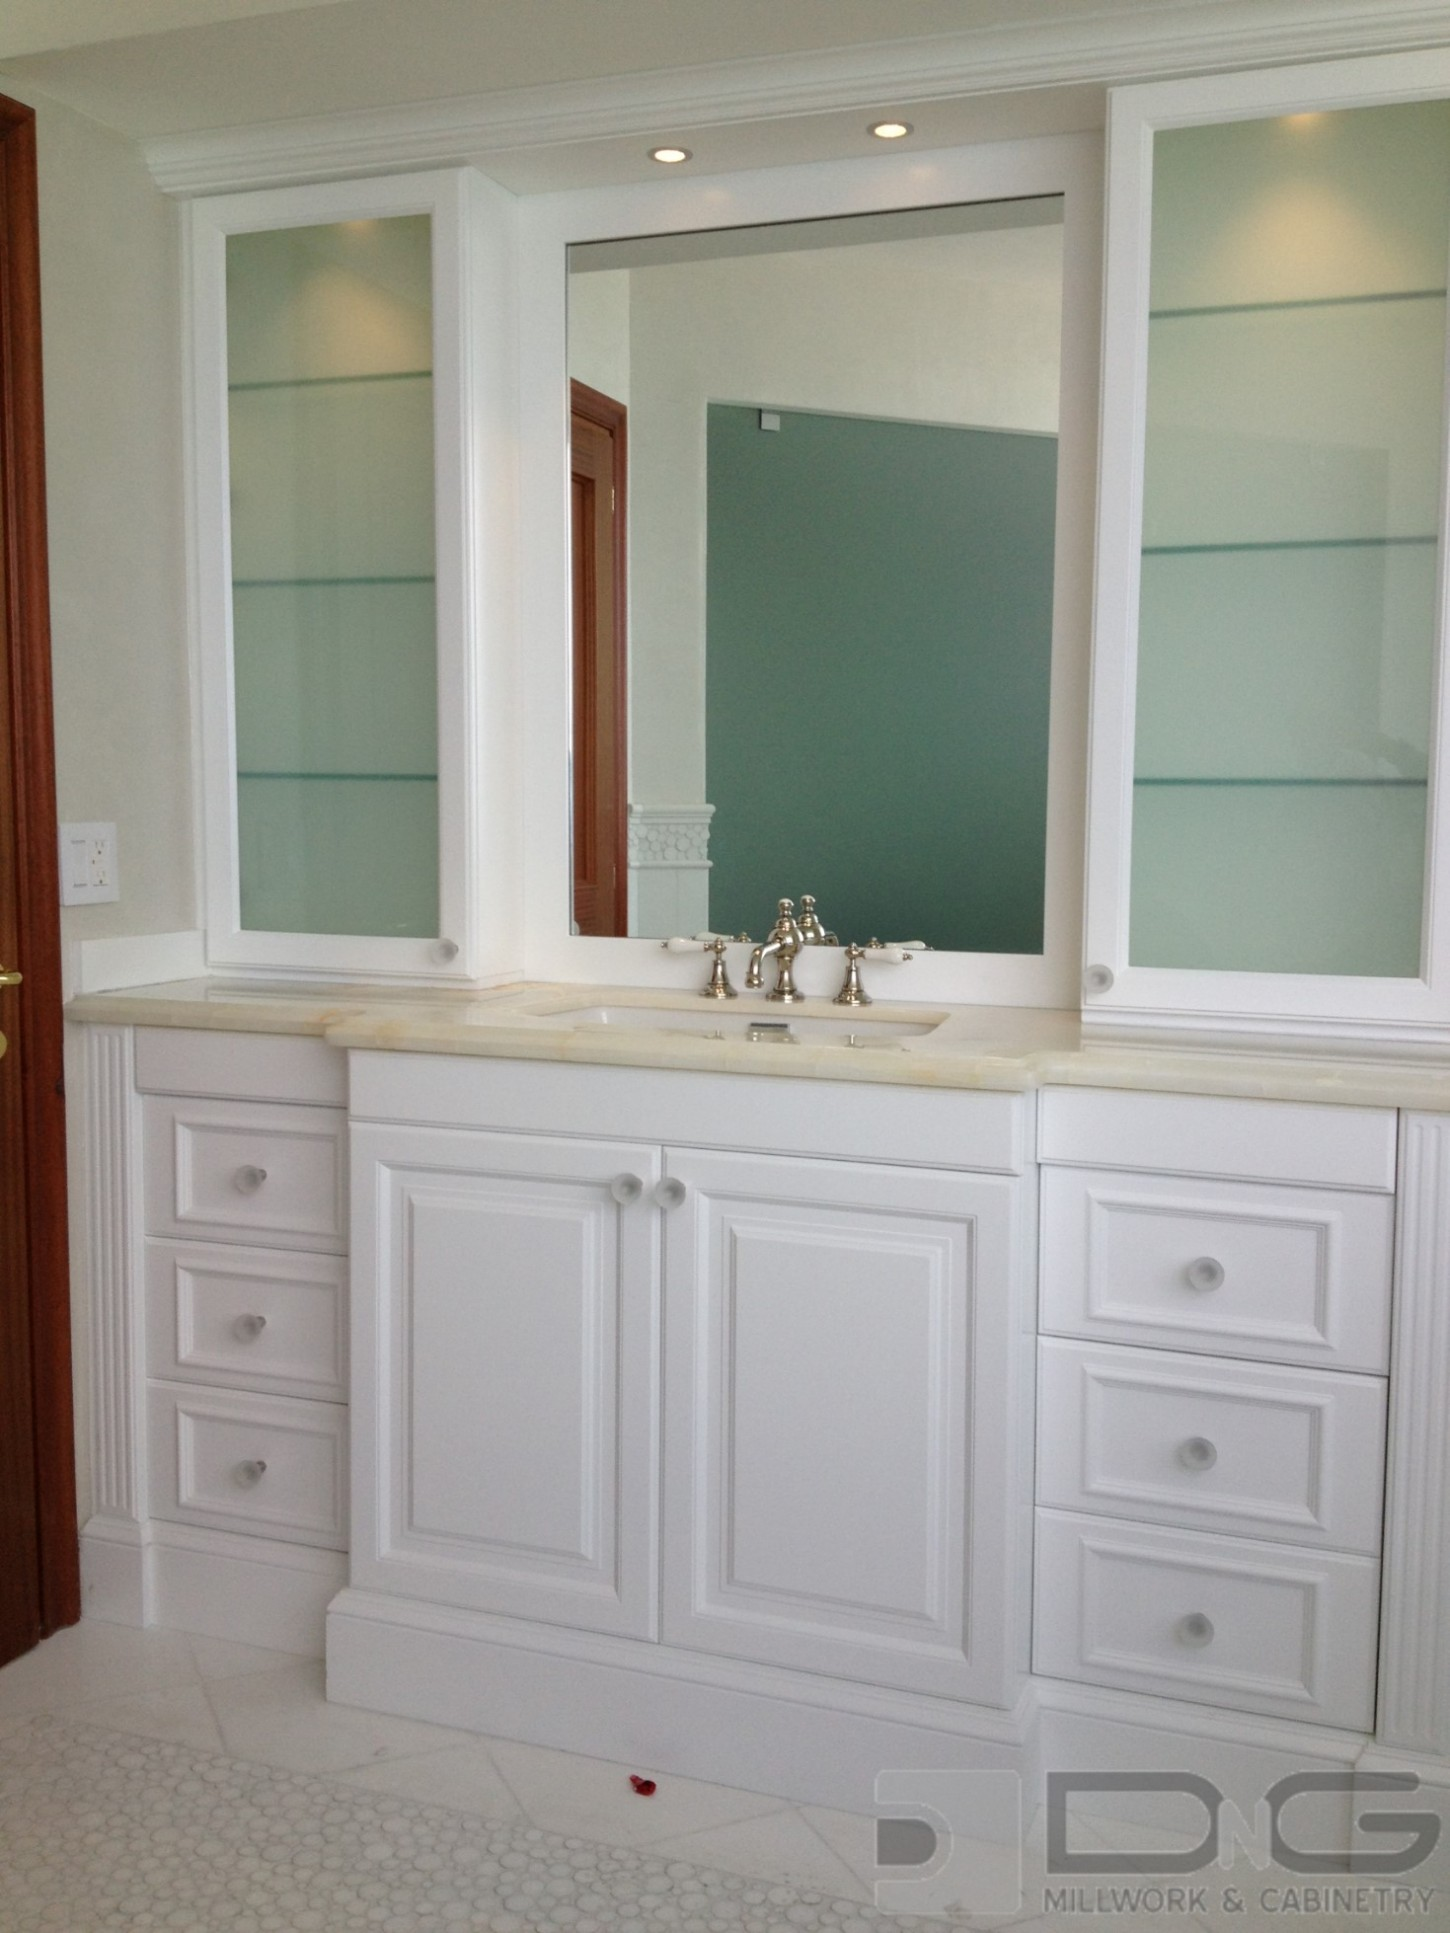 or oi design modern bathrooms enchanting improve within bathroom vanities miami designer in fantastic